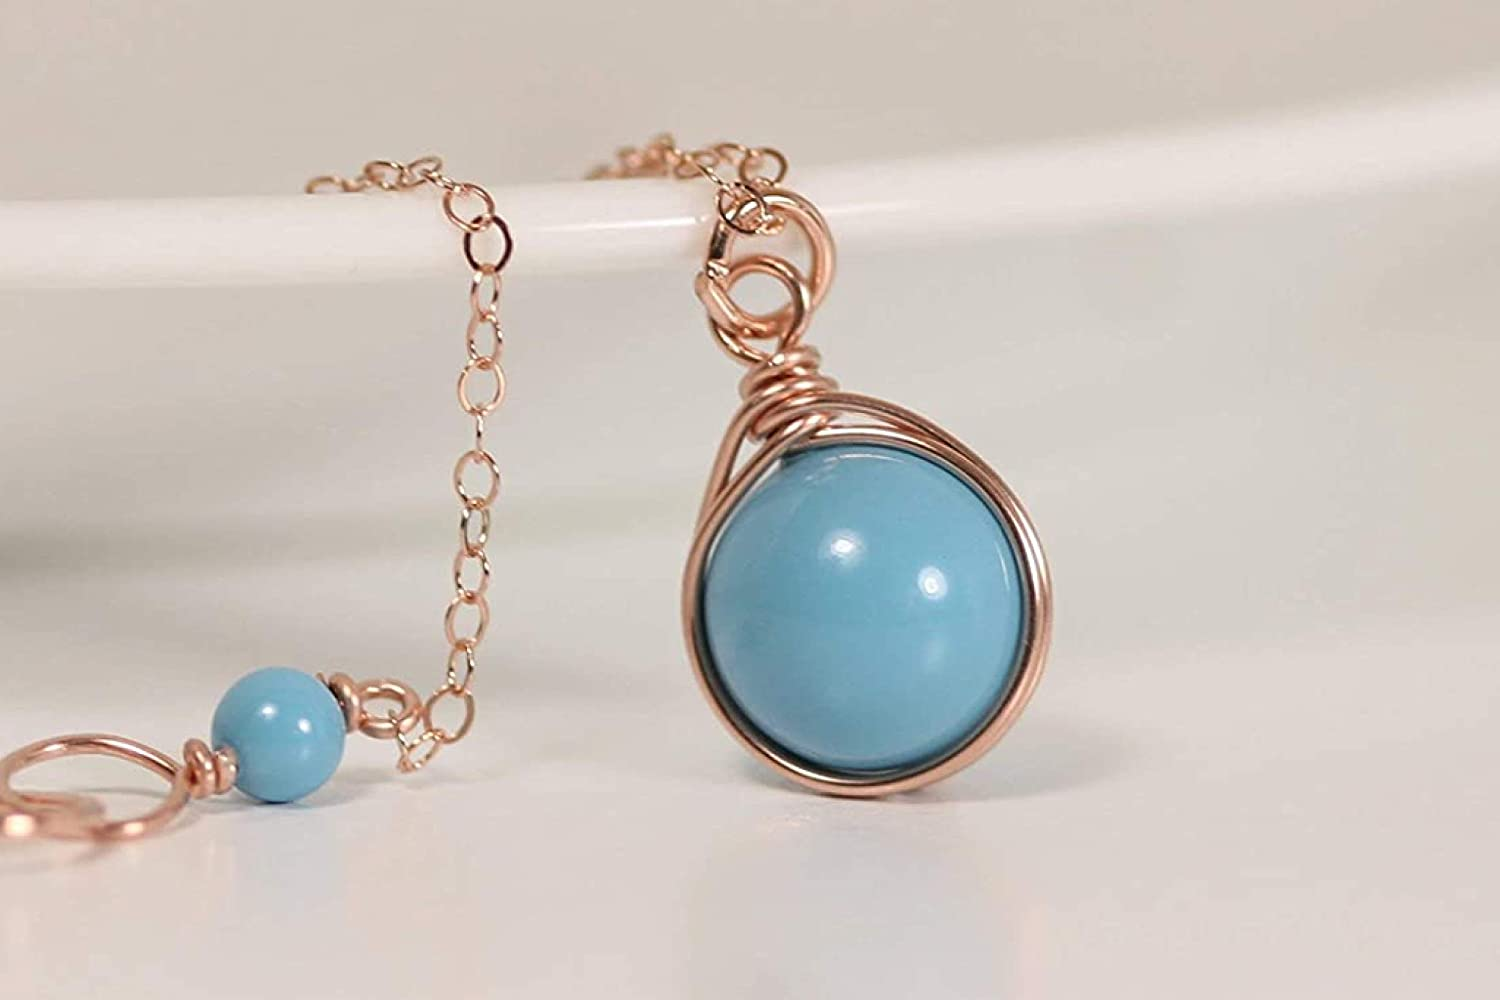 or Sterling Silver Rose Gold Filled Genuine Turquoise Button Necklace in 14K Gold Filled Turquoise Necklace Blue Turquoise Necklace